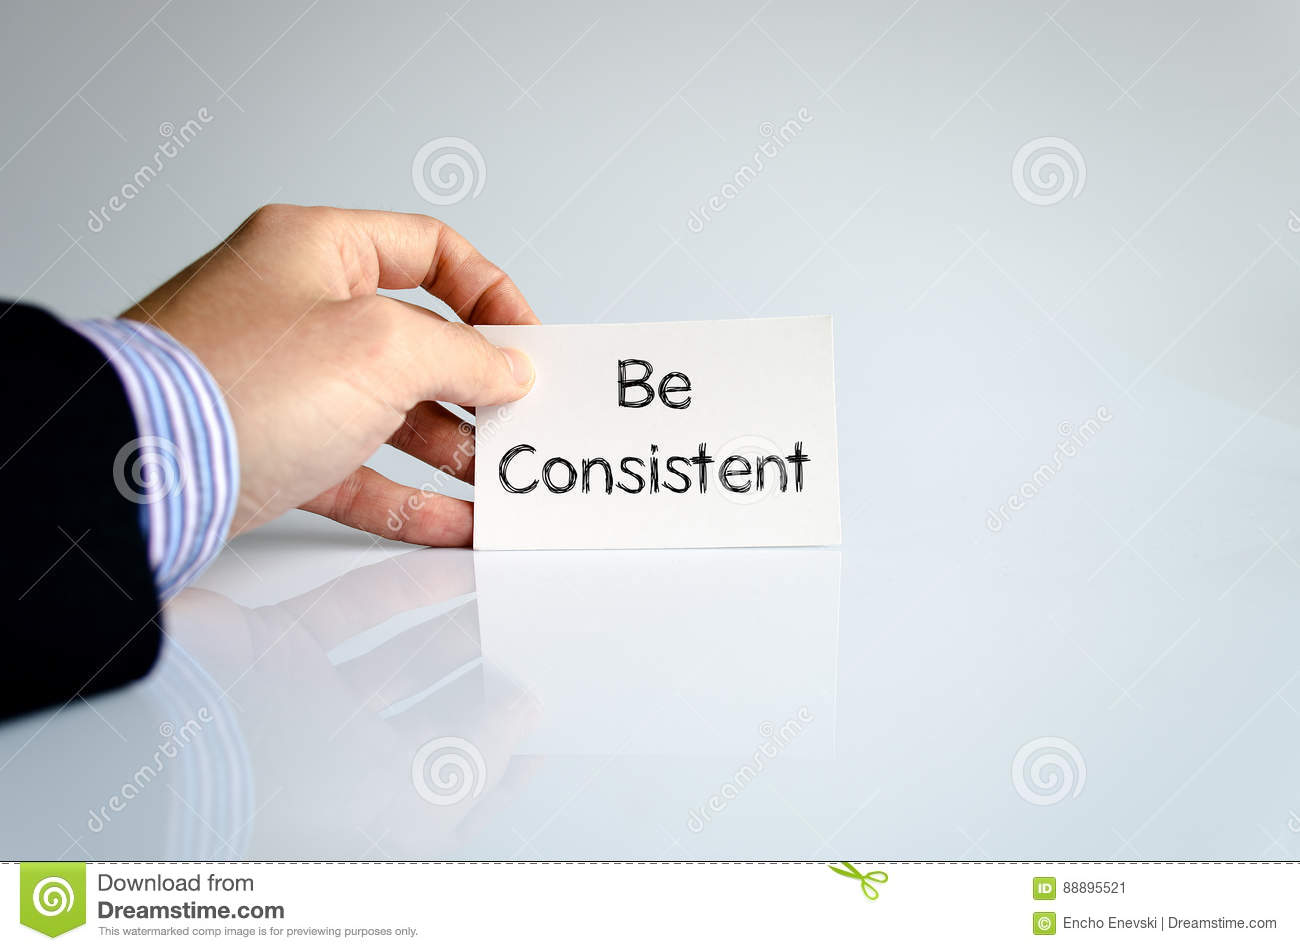 Be consistent text concept